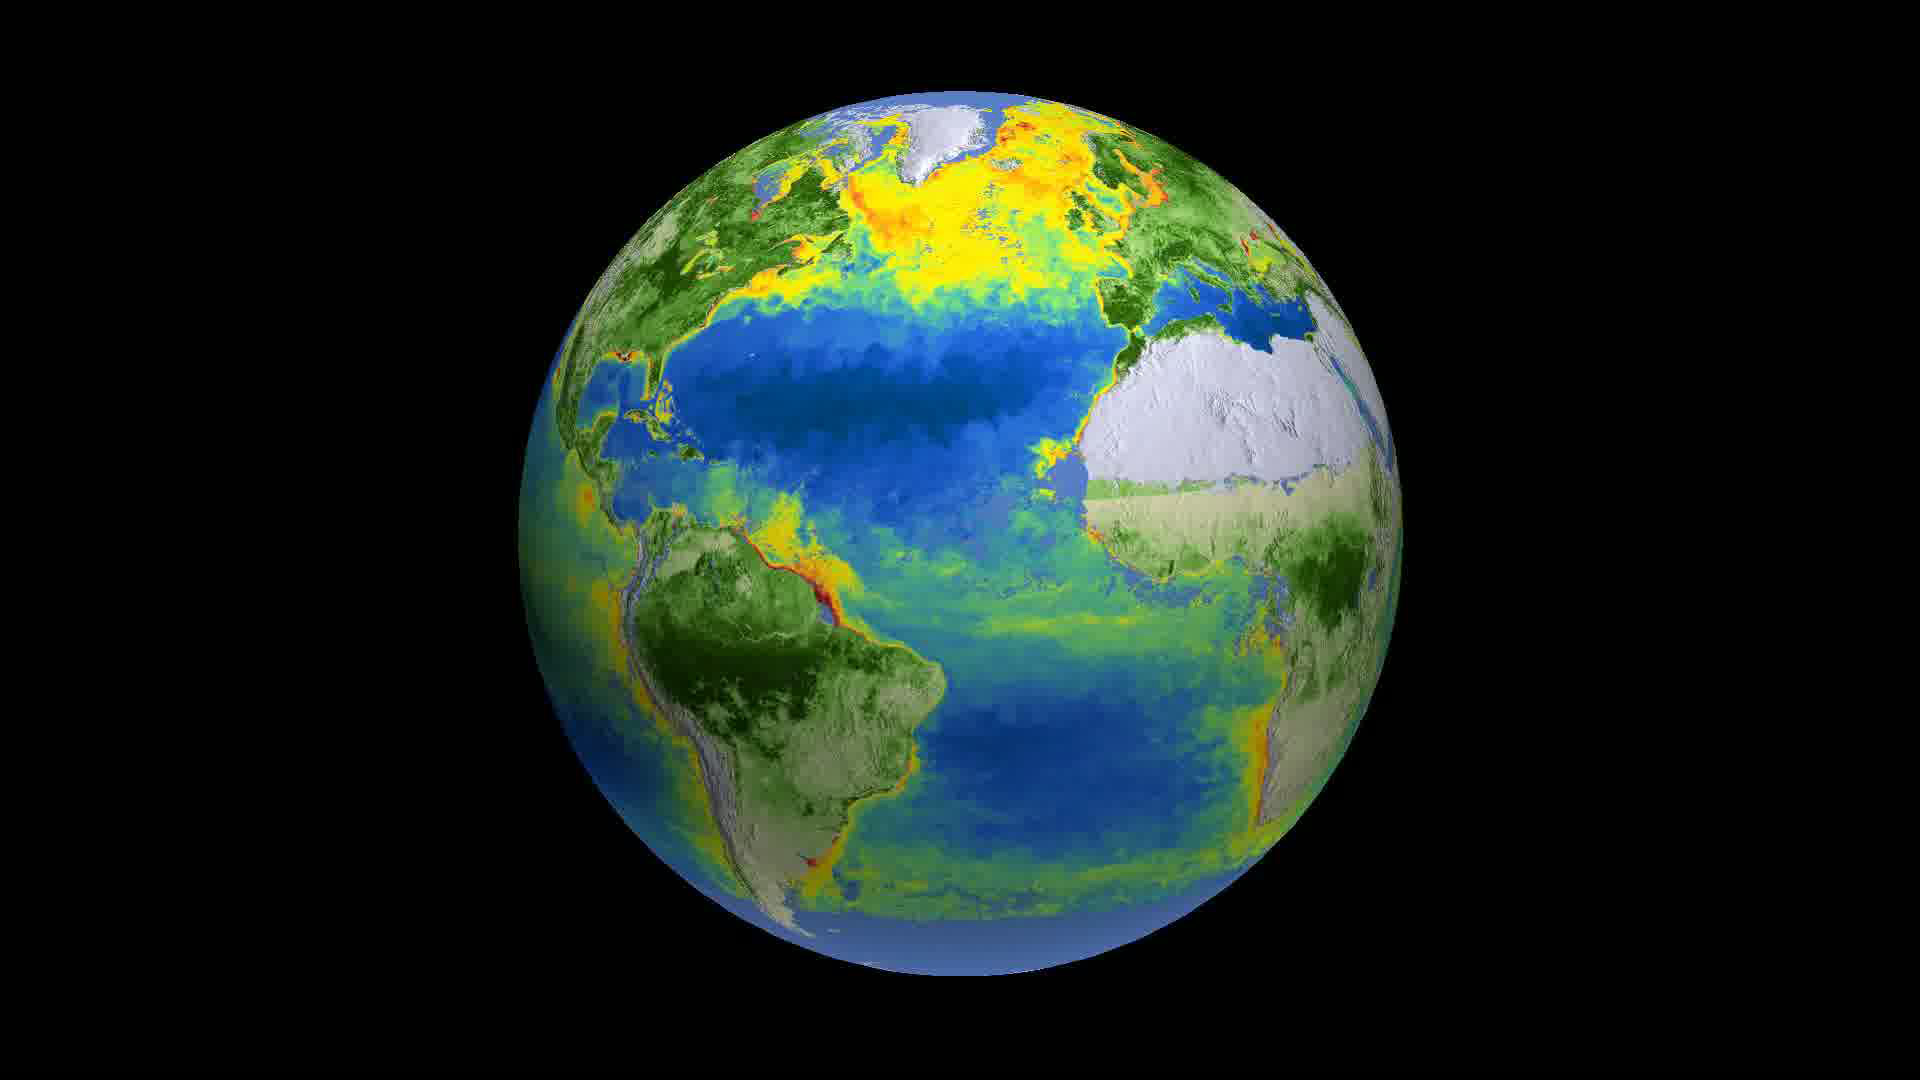 Space in Images - 2011 - 11 - Atmospheric carbon dioxide